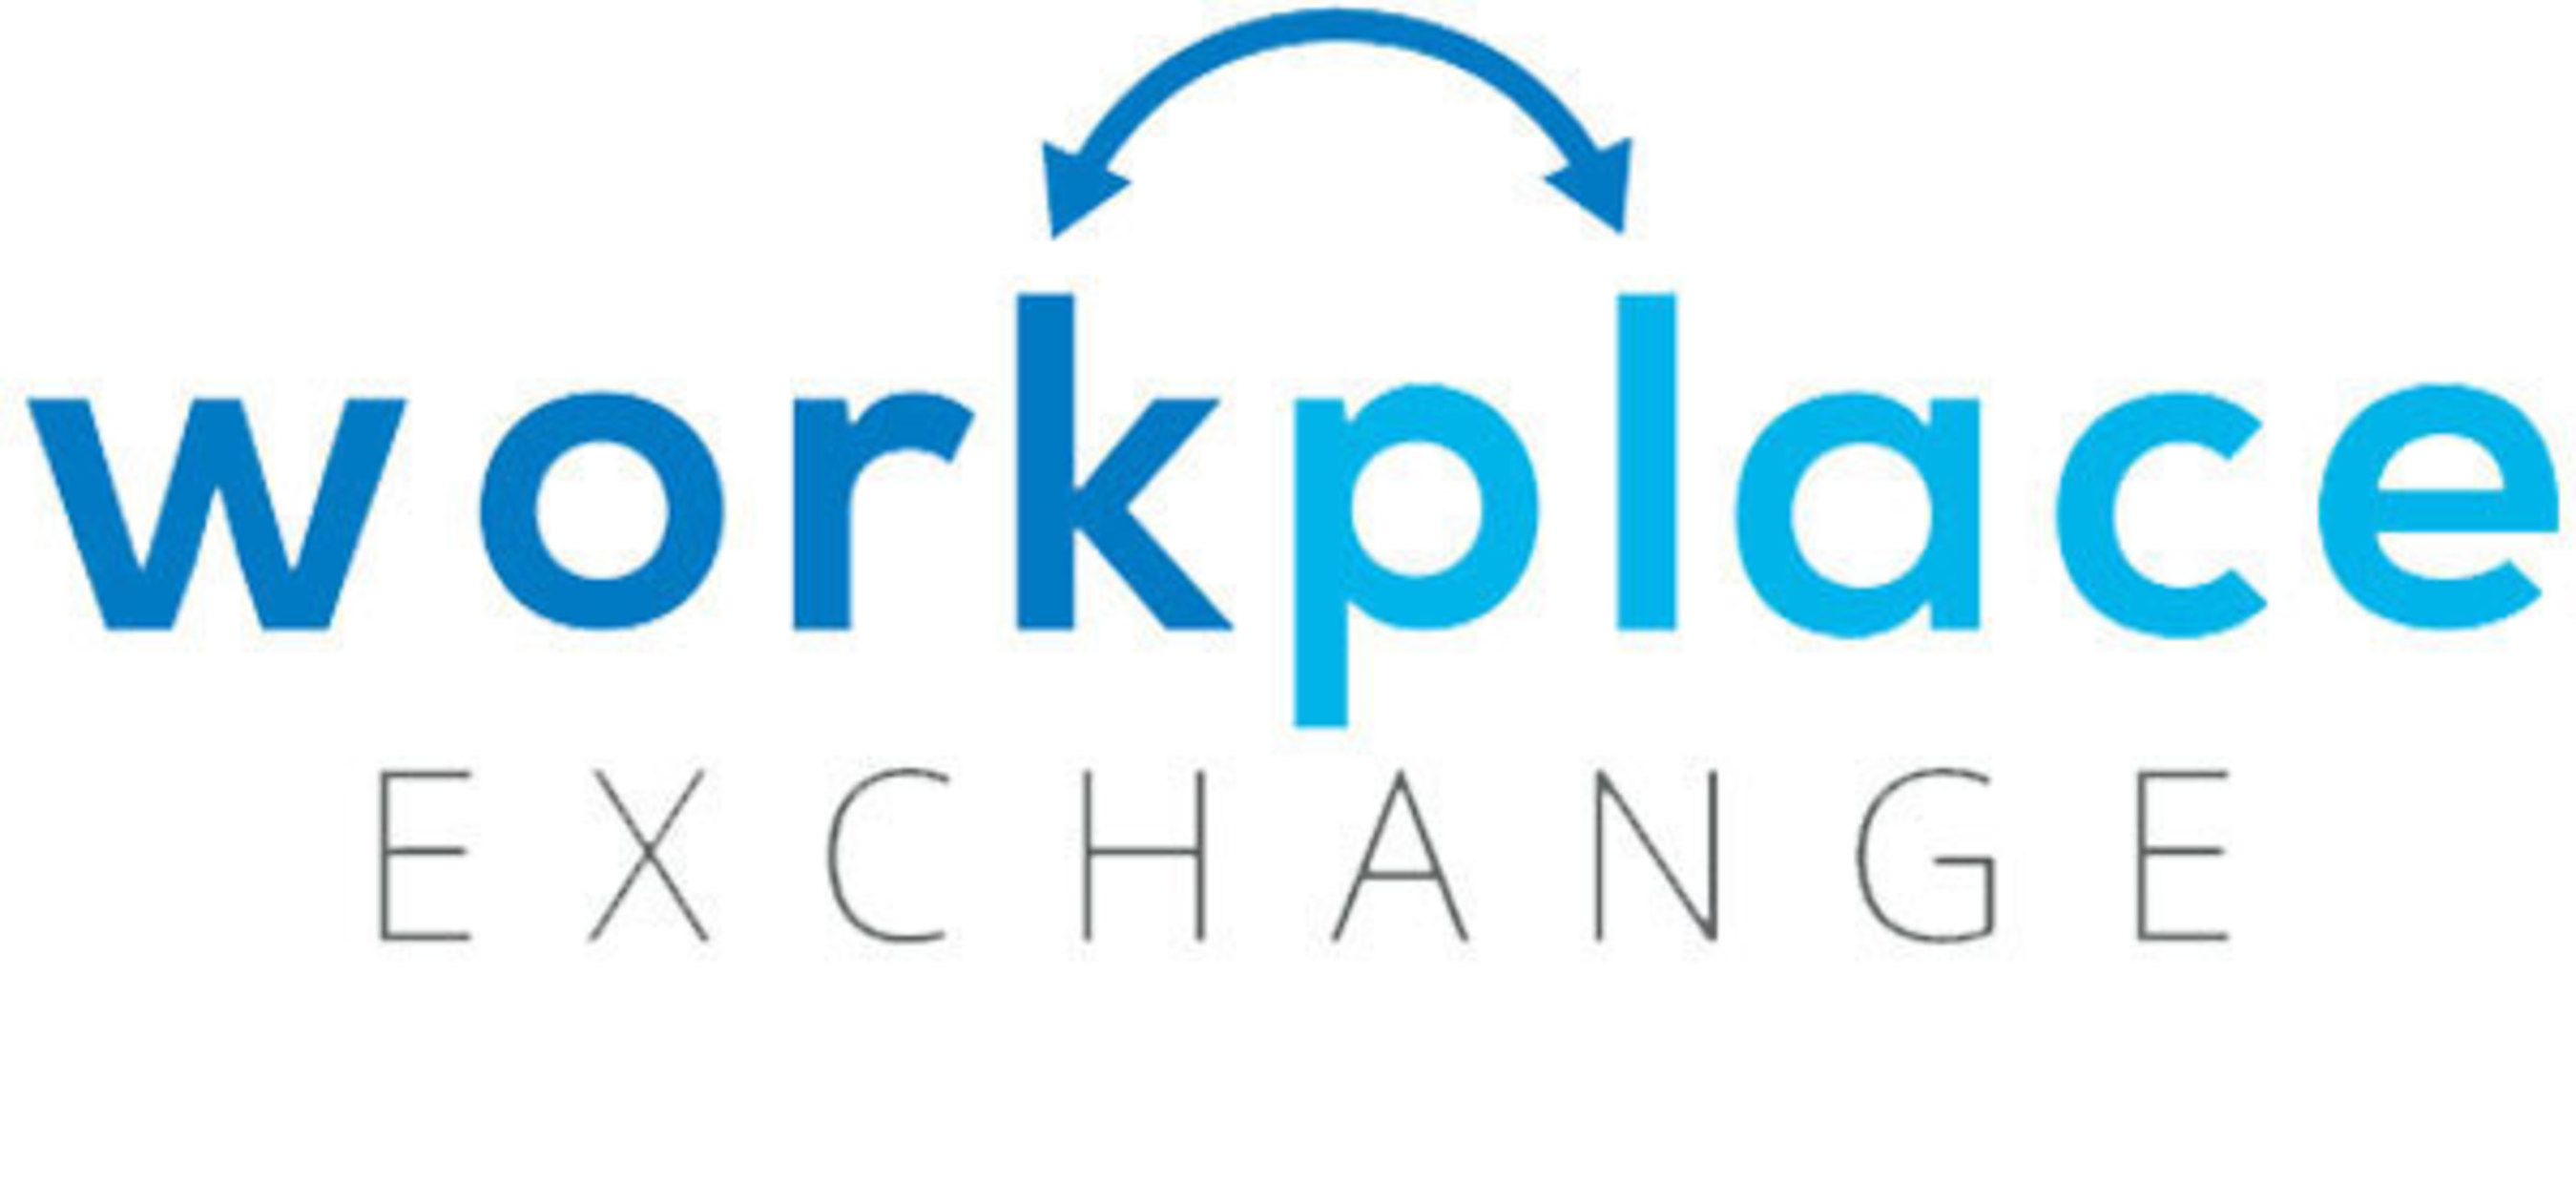 Workplace Exchange is a platform designed to help retirement plan sponsors improve participant engagement by enabling them to share best practices in employee communication, retirement education and the participant experience. To learn more, visit workplaceexchange.corporateinsight.com.